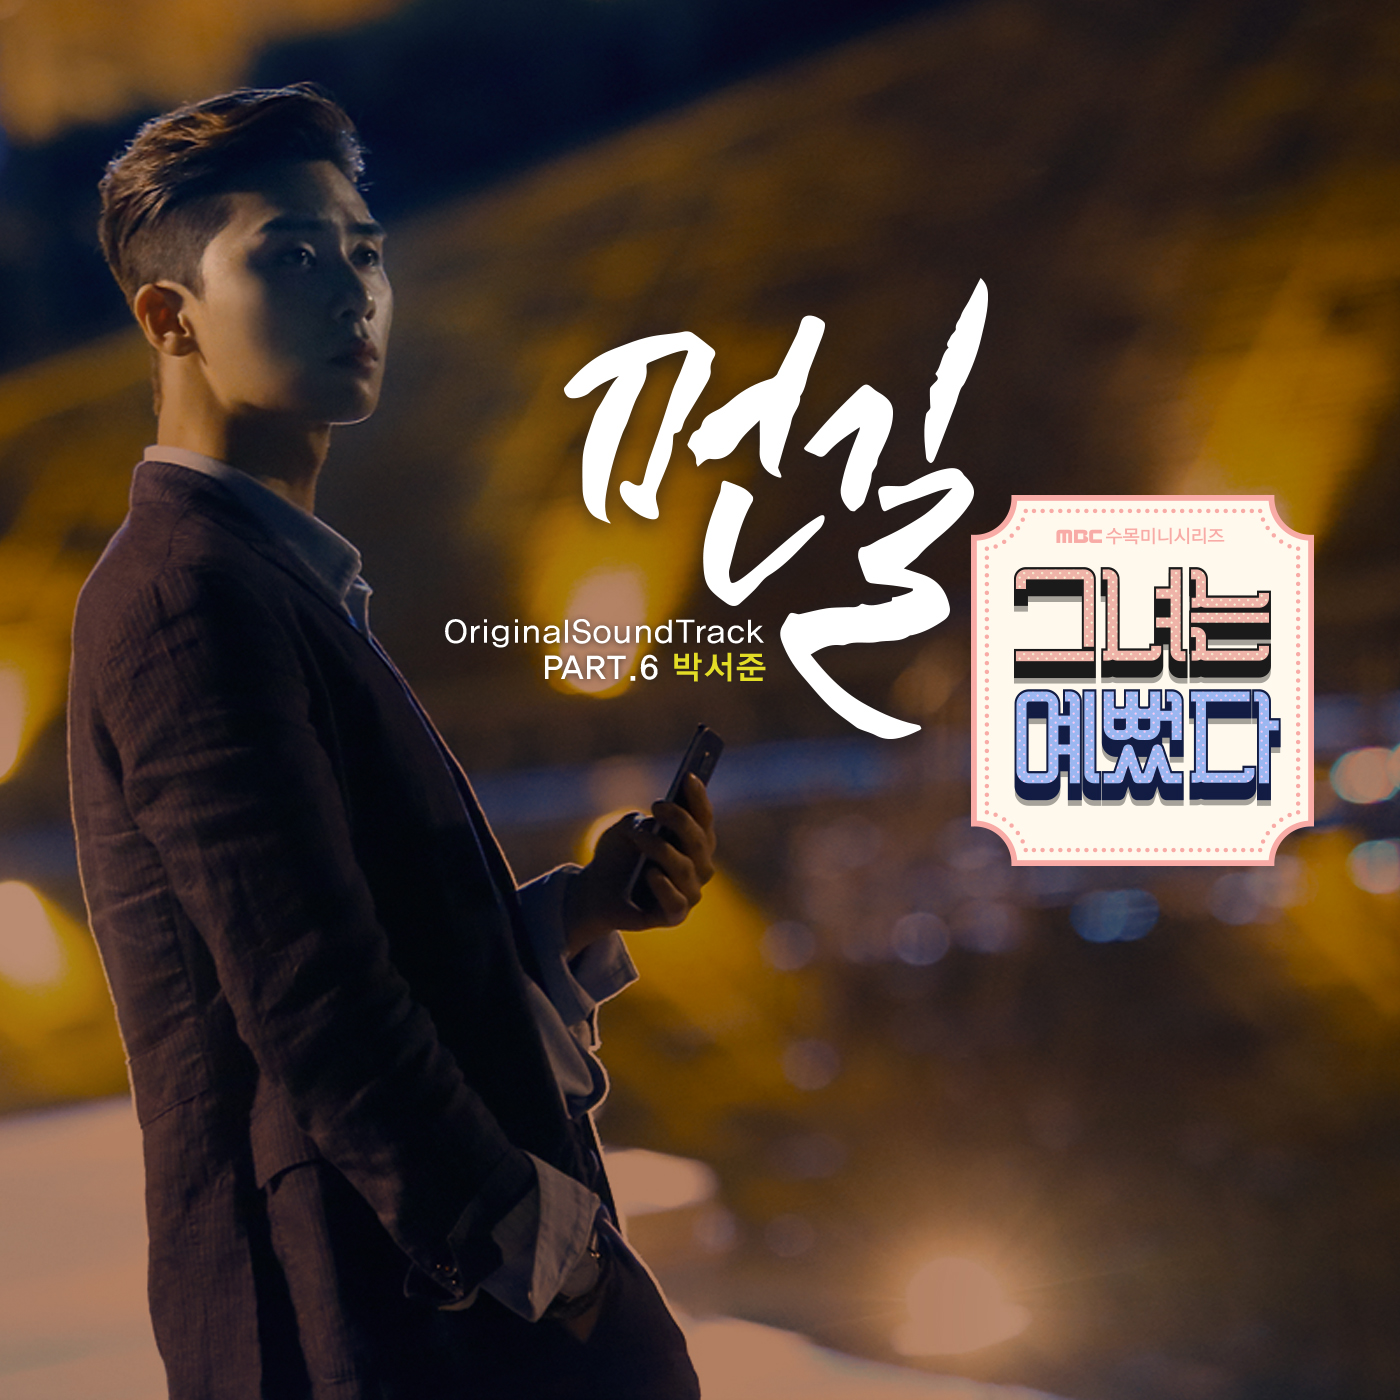 Park Seo Joon - She Was Pretty OST Part.6 - Long Way K2Ost free mp3 download korean song kpop kdrama ost lyric 320 kbps